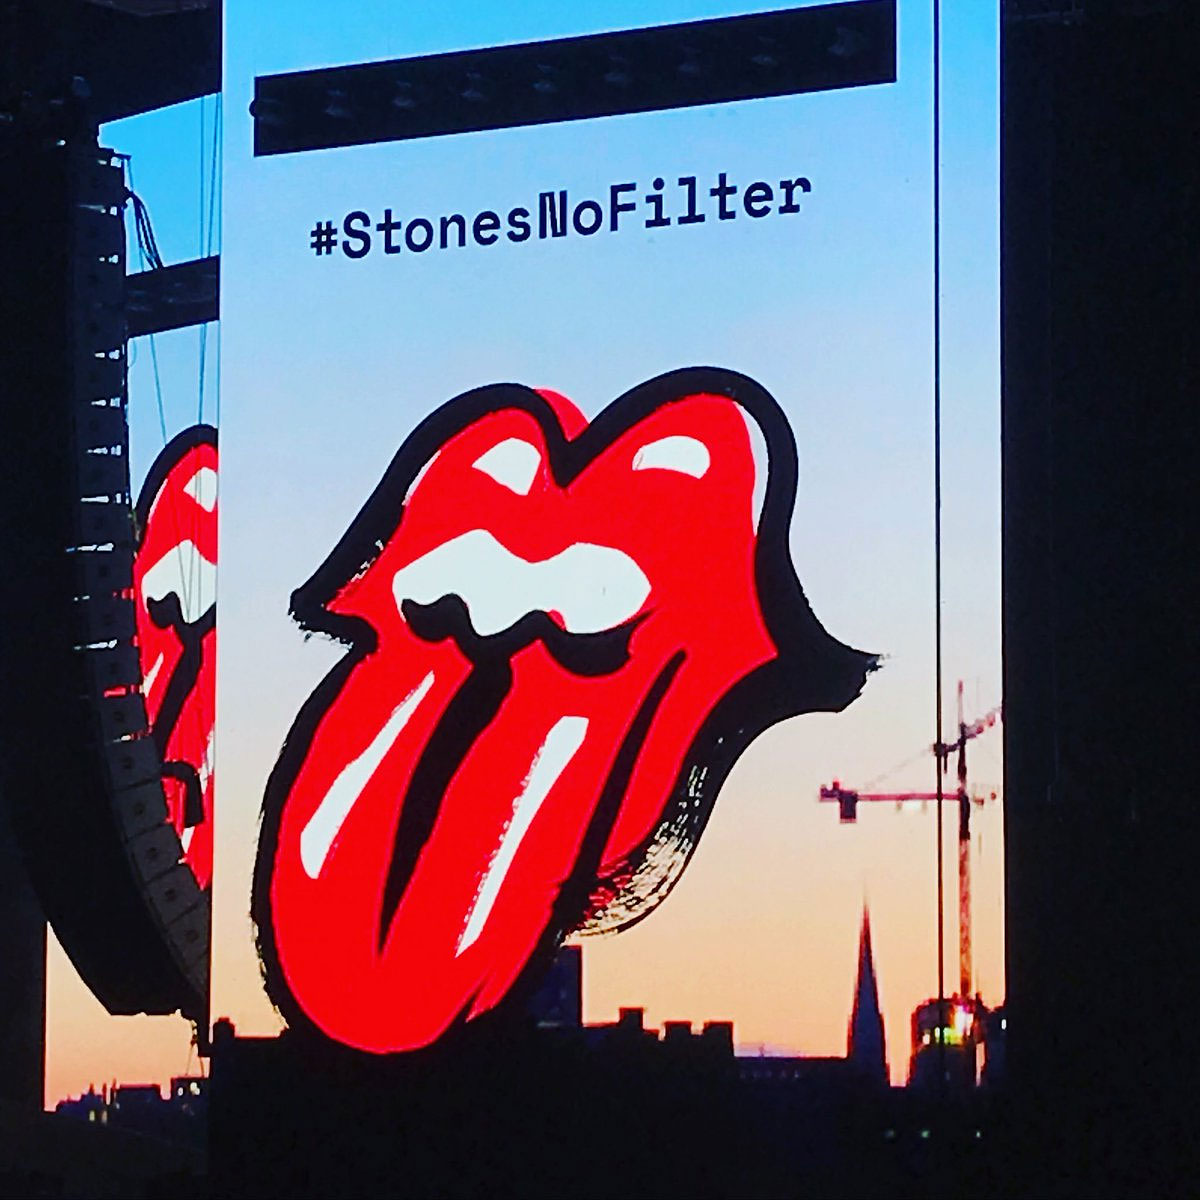 The Rolling Stones News - 'Confirmed: UK Tour 2018! No ... Rolling Stones News